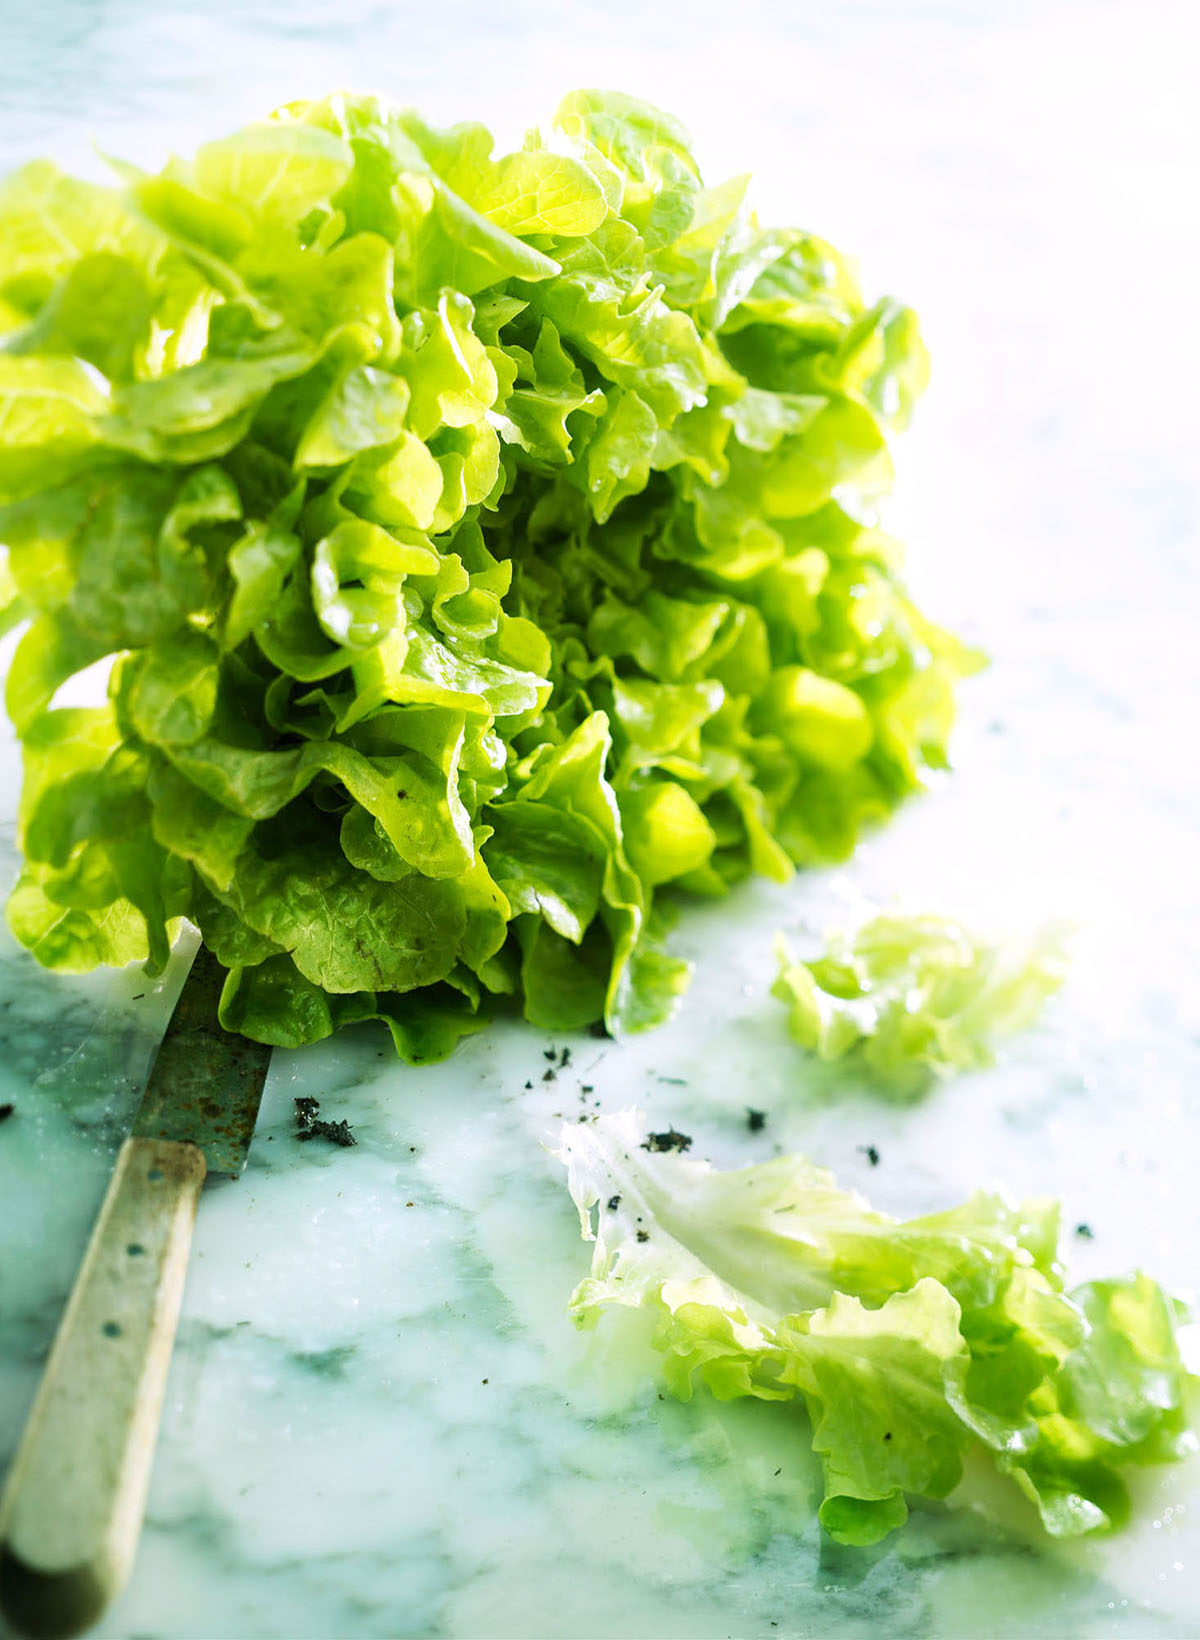 Food styling photography of lettuce with a knife made by Studio_m Photography Amsterdam